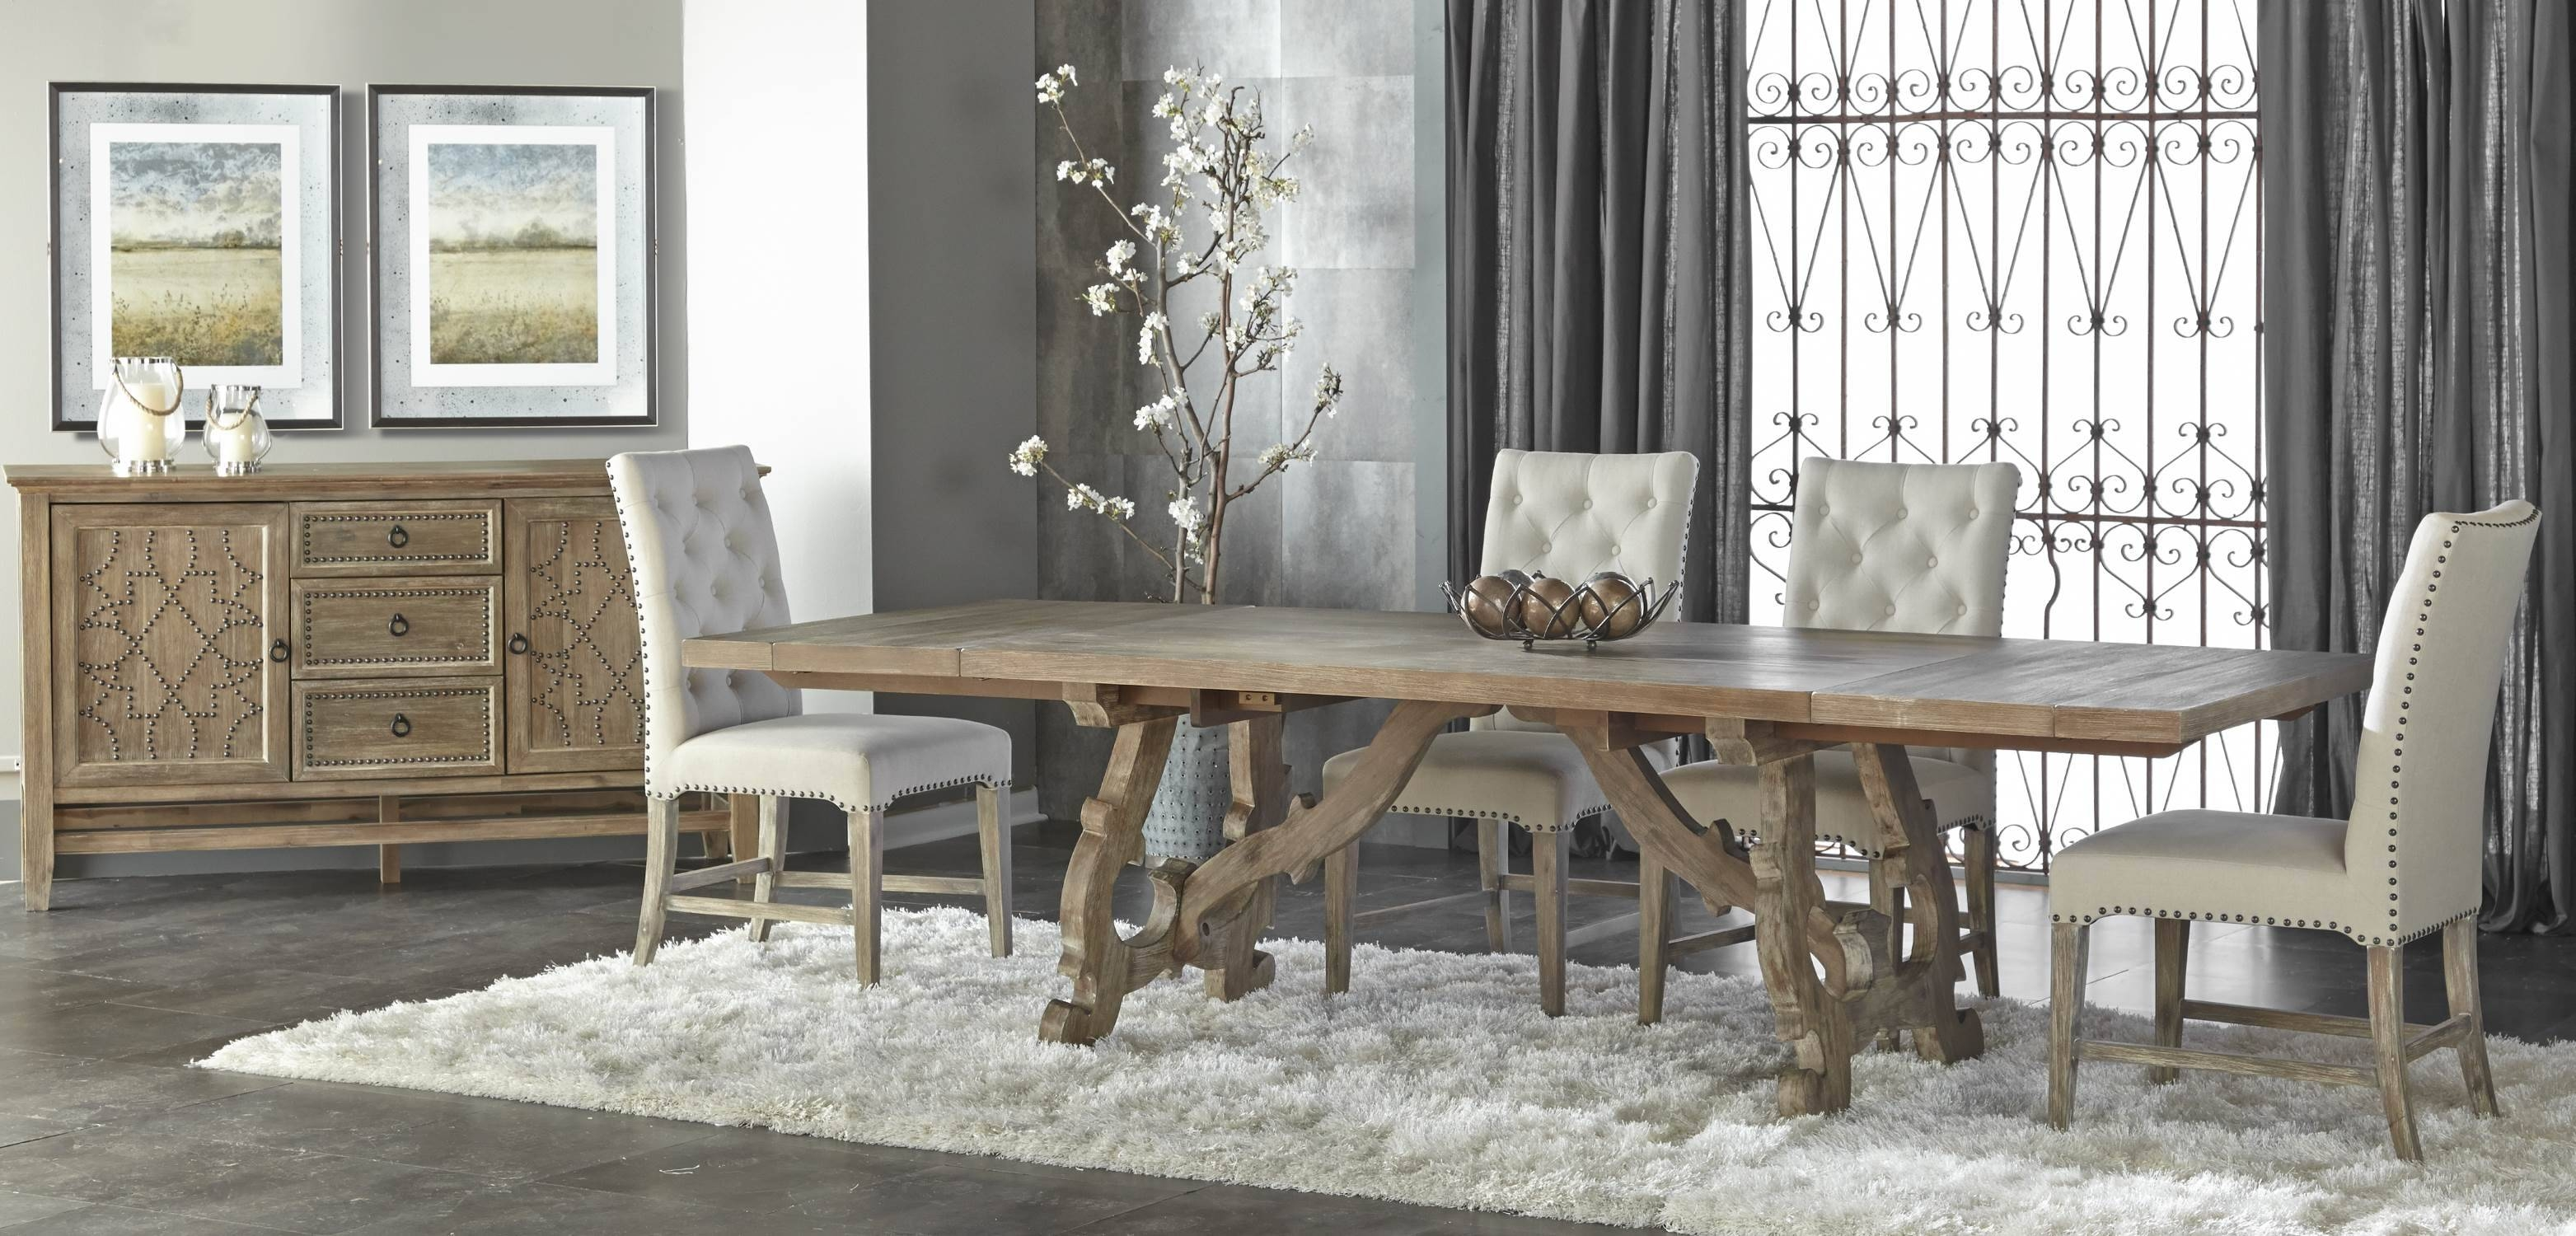 Braxton Sideboardorient Express Intended For Most Current Dining Tables And Sideboards (#2 of 15)